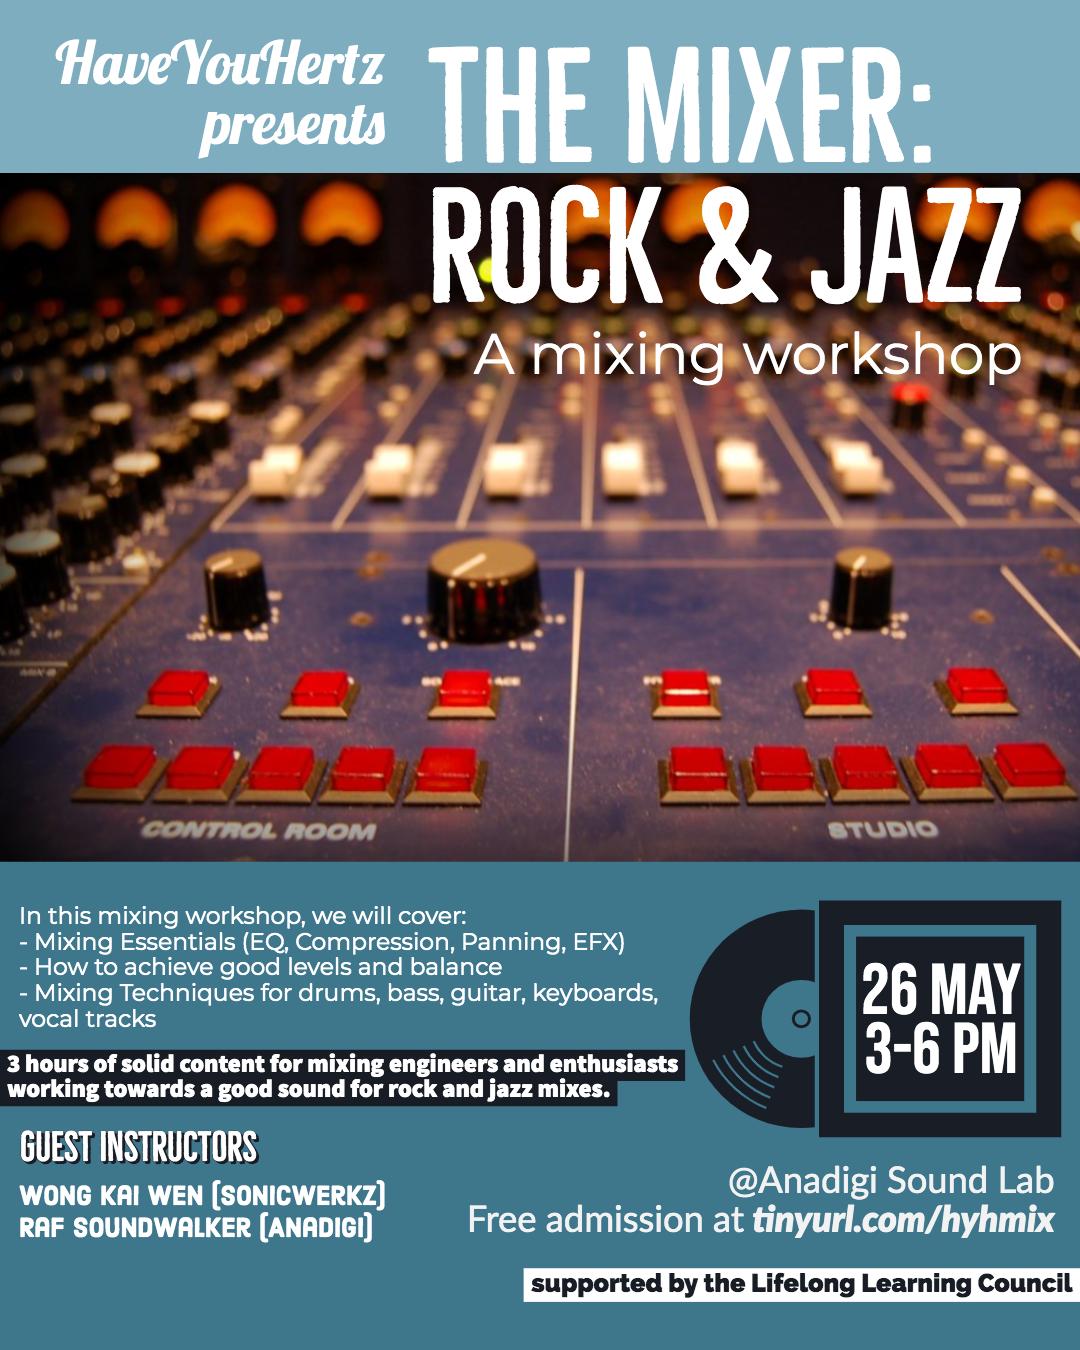 THE MIXER: ROCK & JAZZ - a Mixing Workshop by by